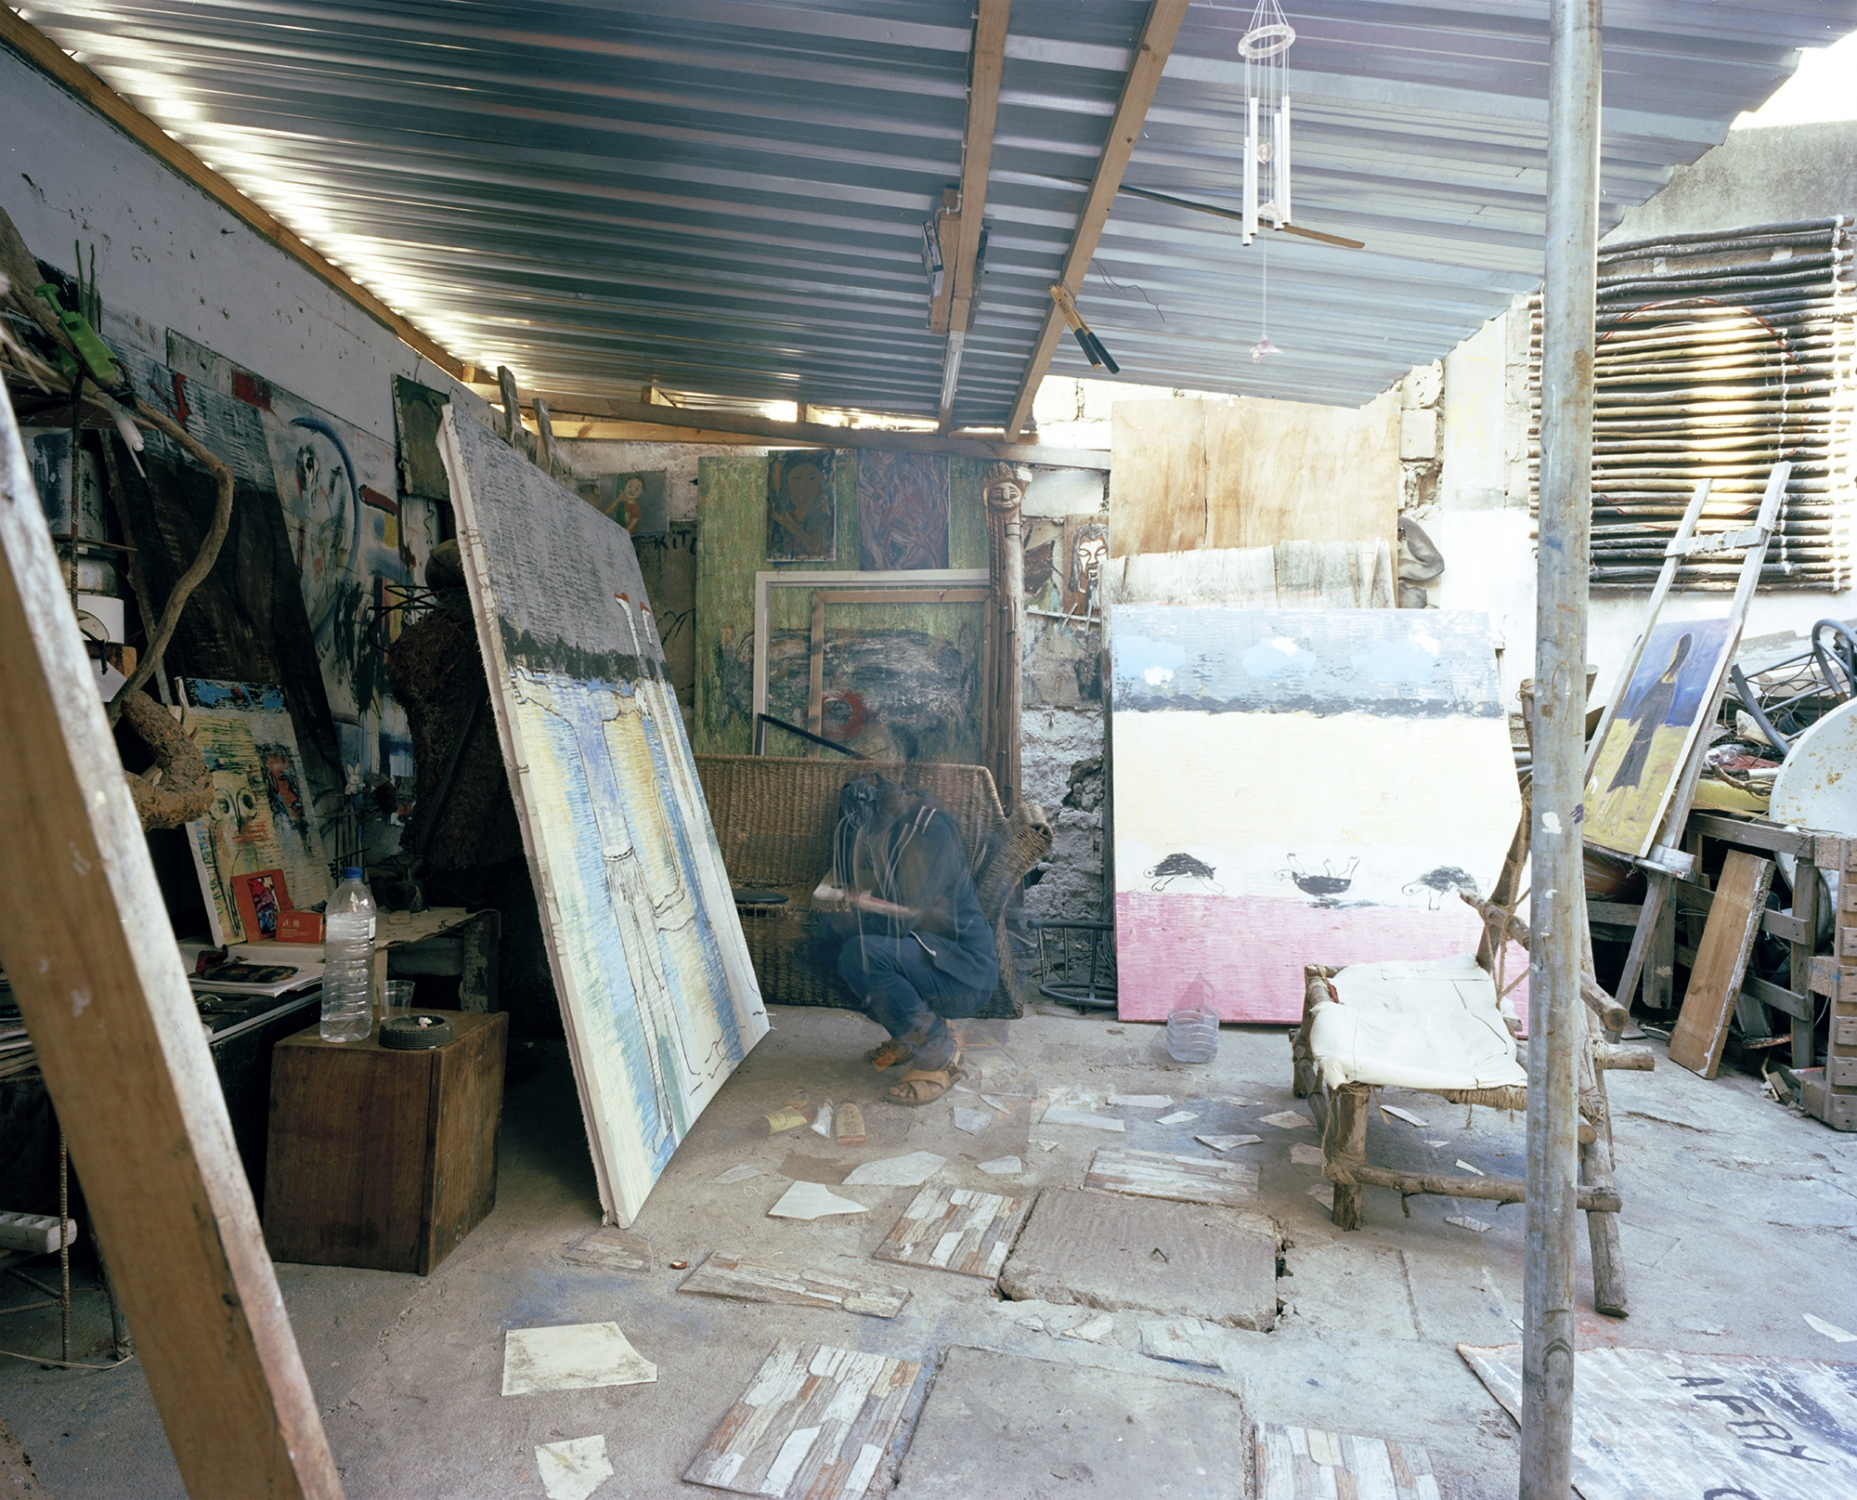 Butcheca painting at his studio, Maputo, Mozambique. July 2016. This image was made with color film with a Mamyia 7II camera, in 6x7 format. It was scanned by the artist with Hasselblad flextight X1 professional scanner.  This has a edition of 6 + 3 PA  in the size 75x94 cm. It is printed by the artists in archival quality.